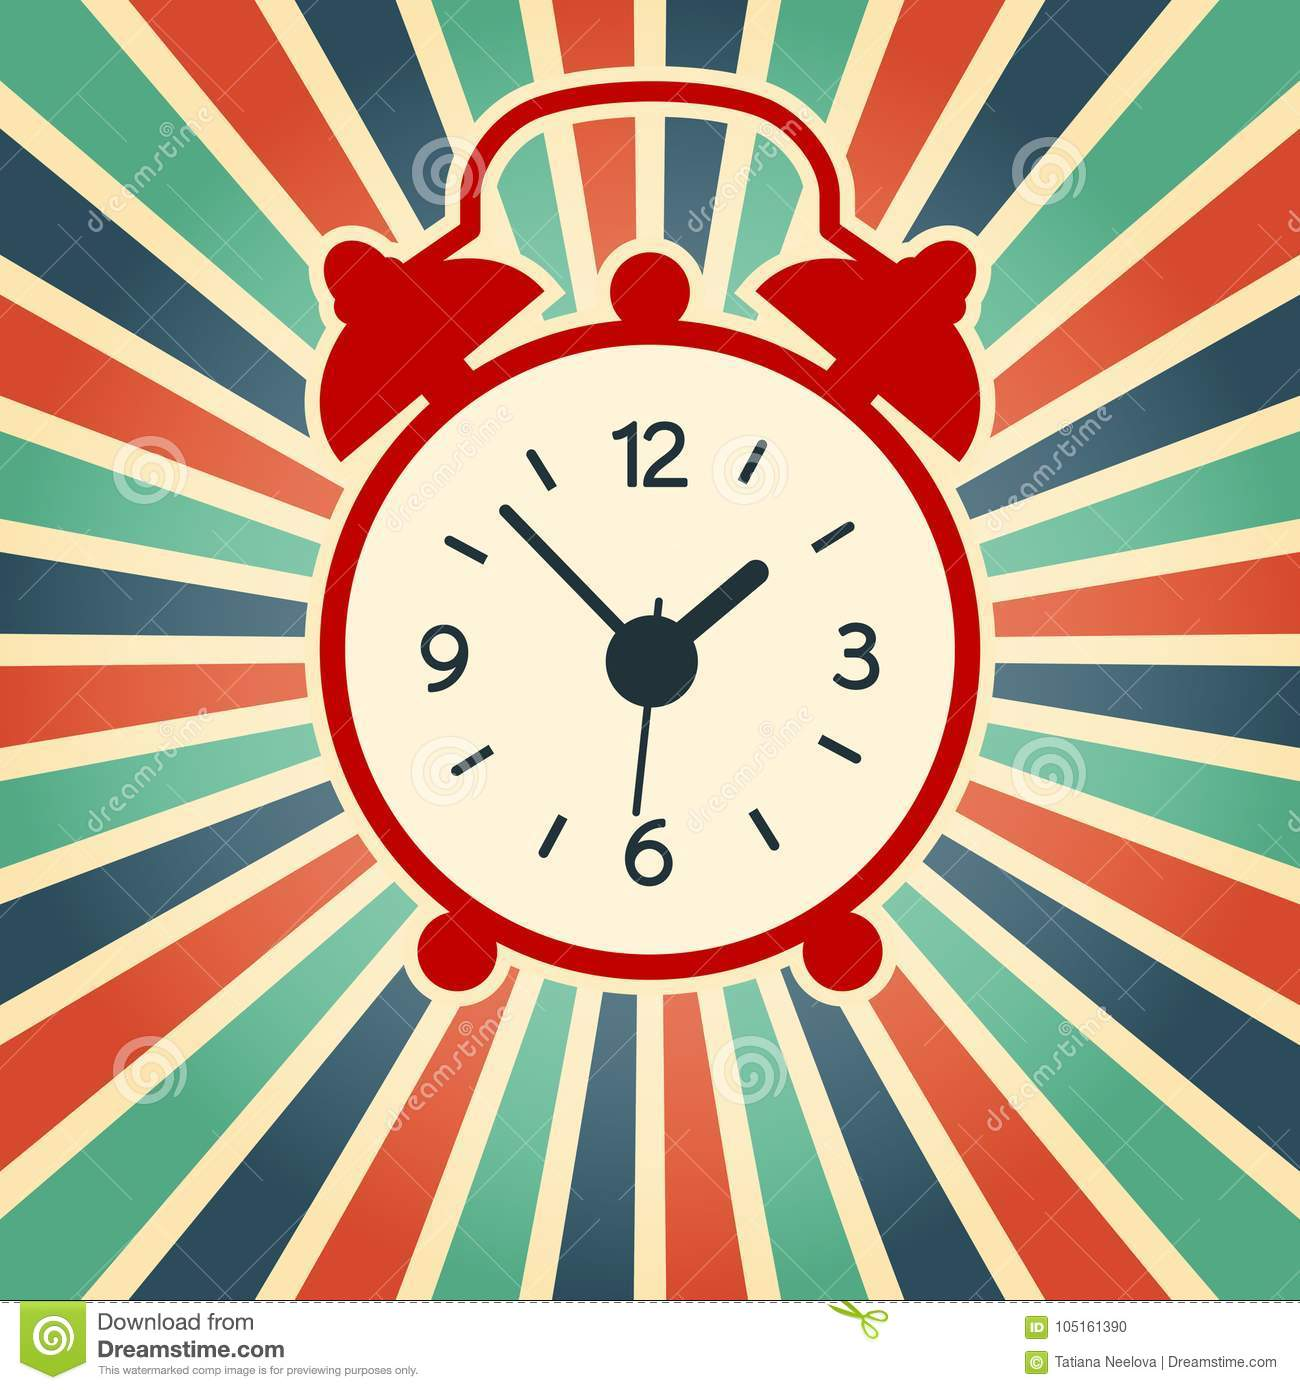 A vector illustration of simple red alarm clock on the vintage background. Old, modern clock silhouette.